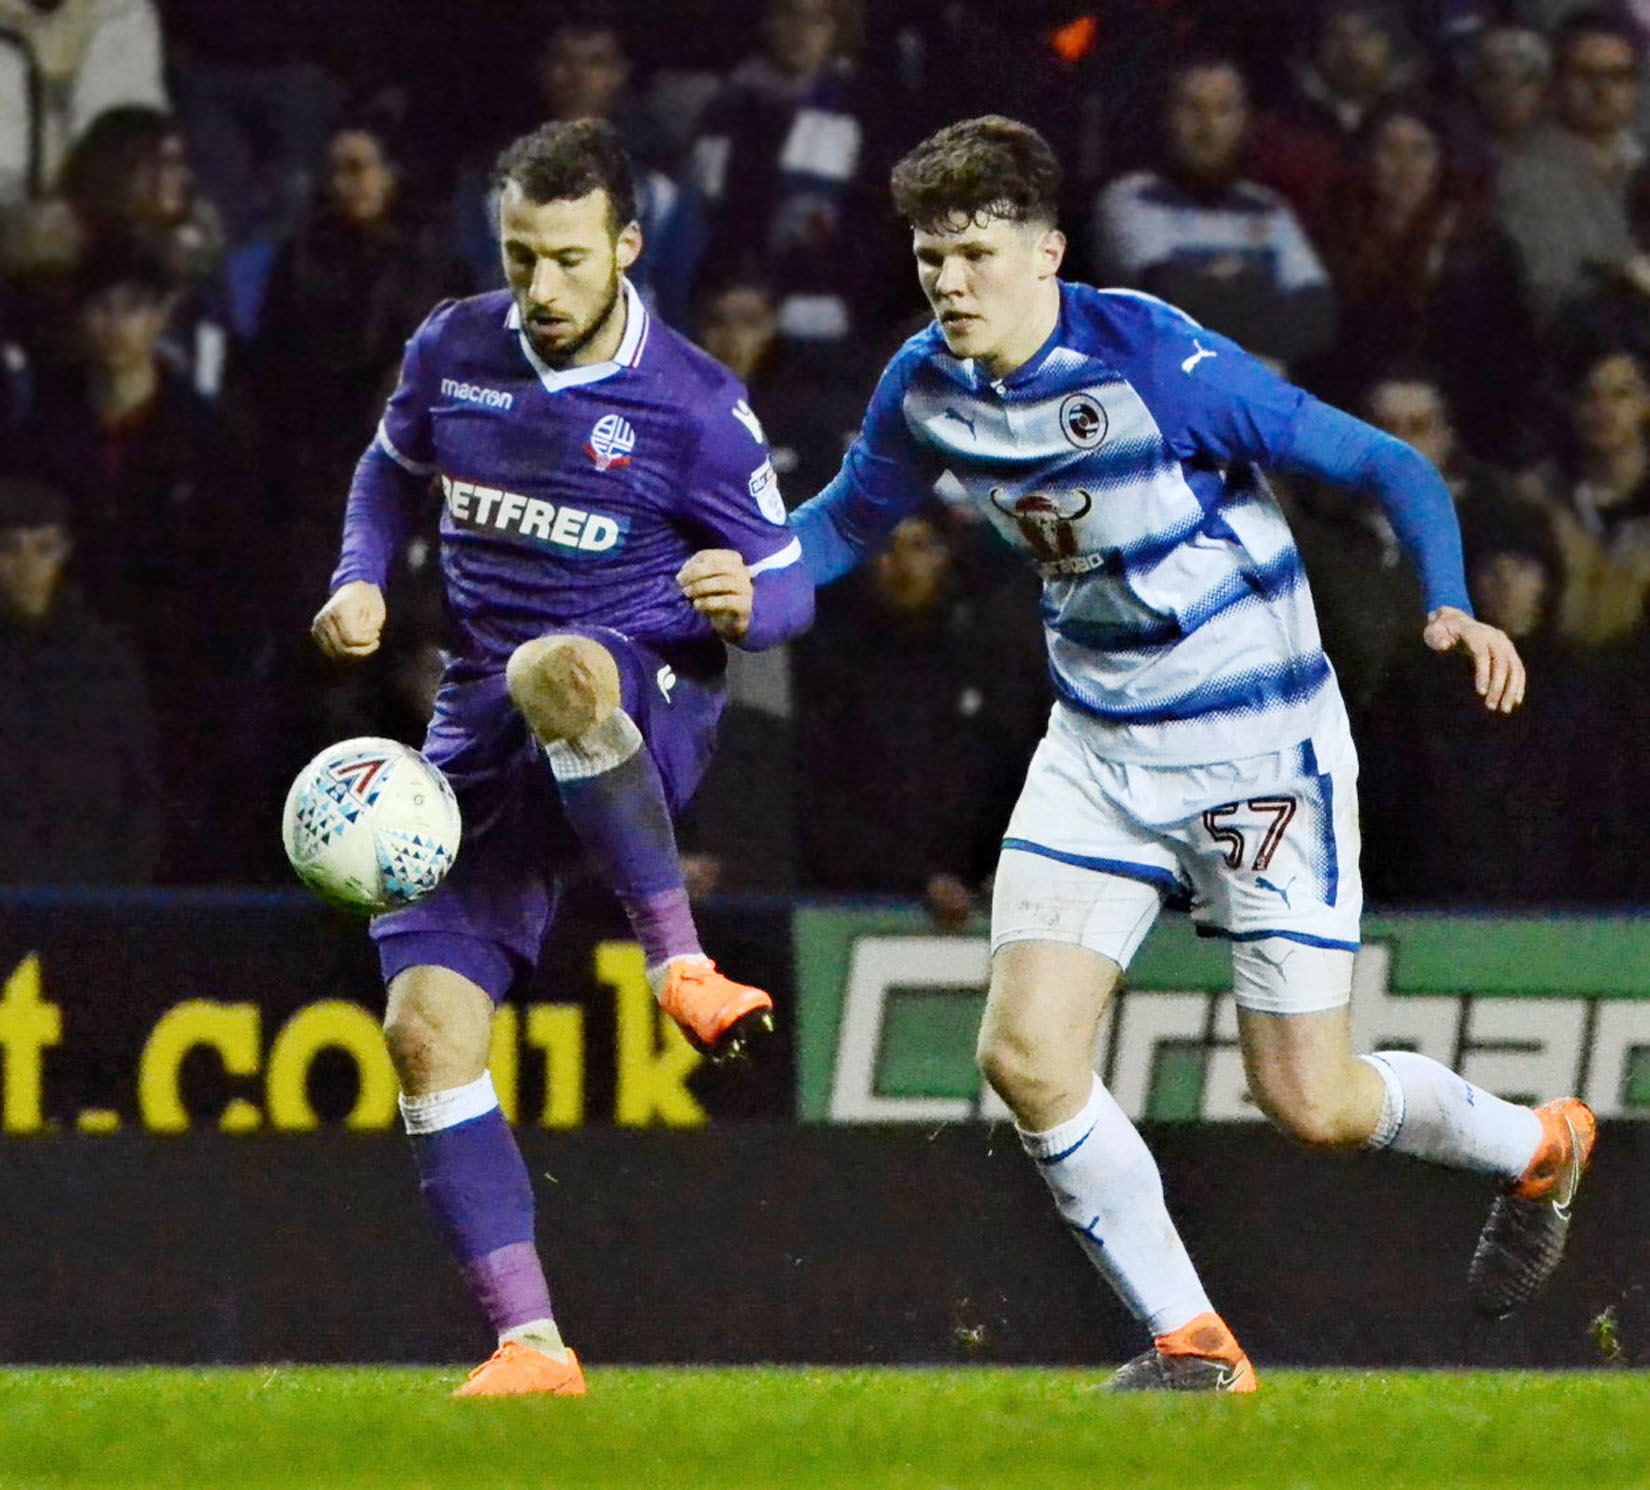 Tom Holmes in action for Reading FC